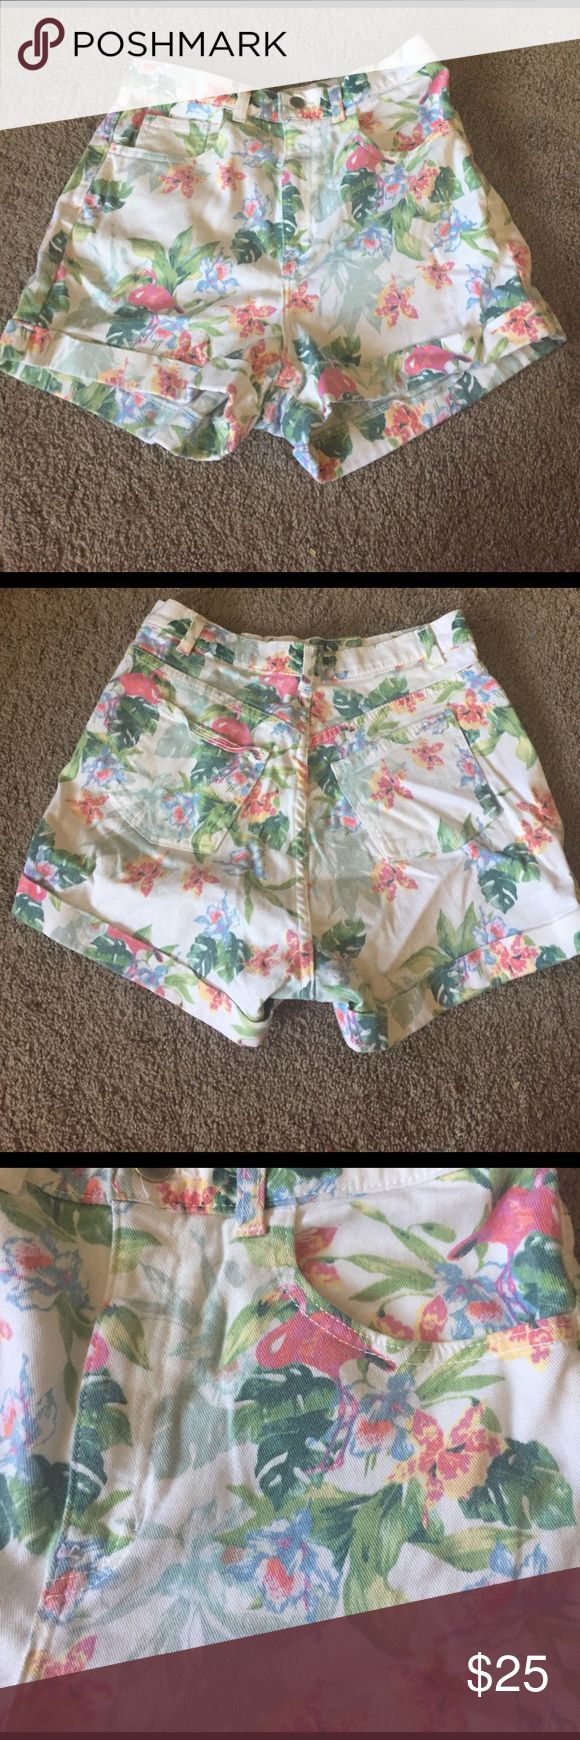 American Apparel shorts White, high waisted shorts, with a tropical design with pink flamingos American Apparel Shorts Jean Shorts